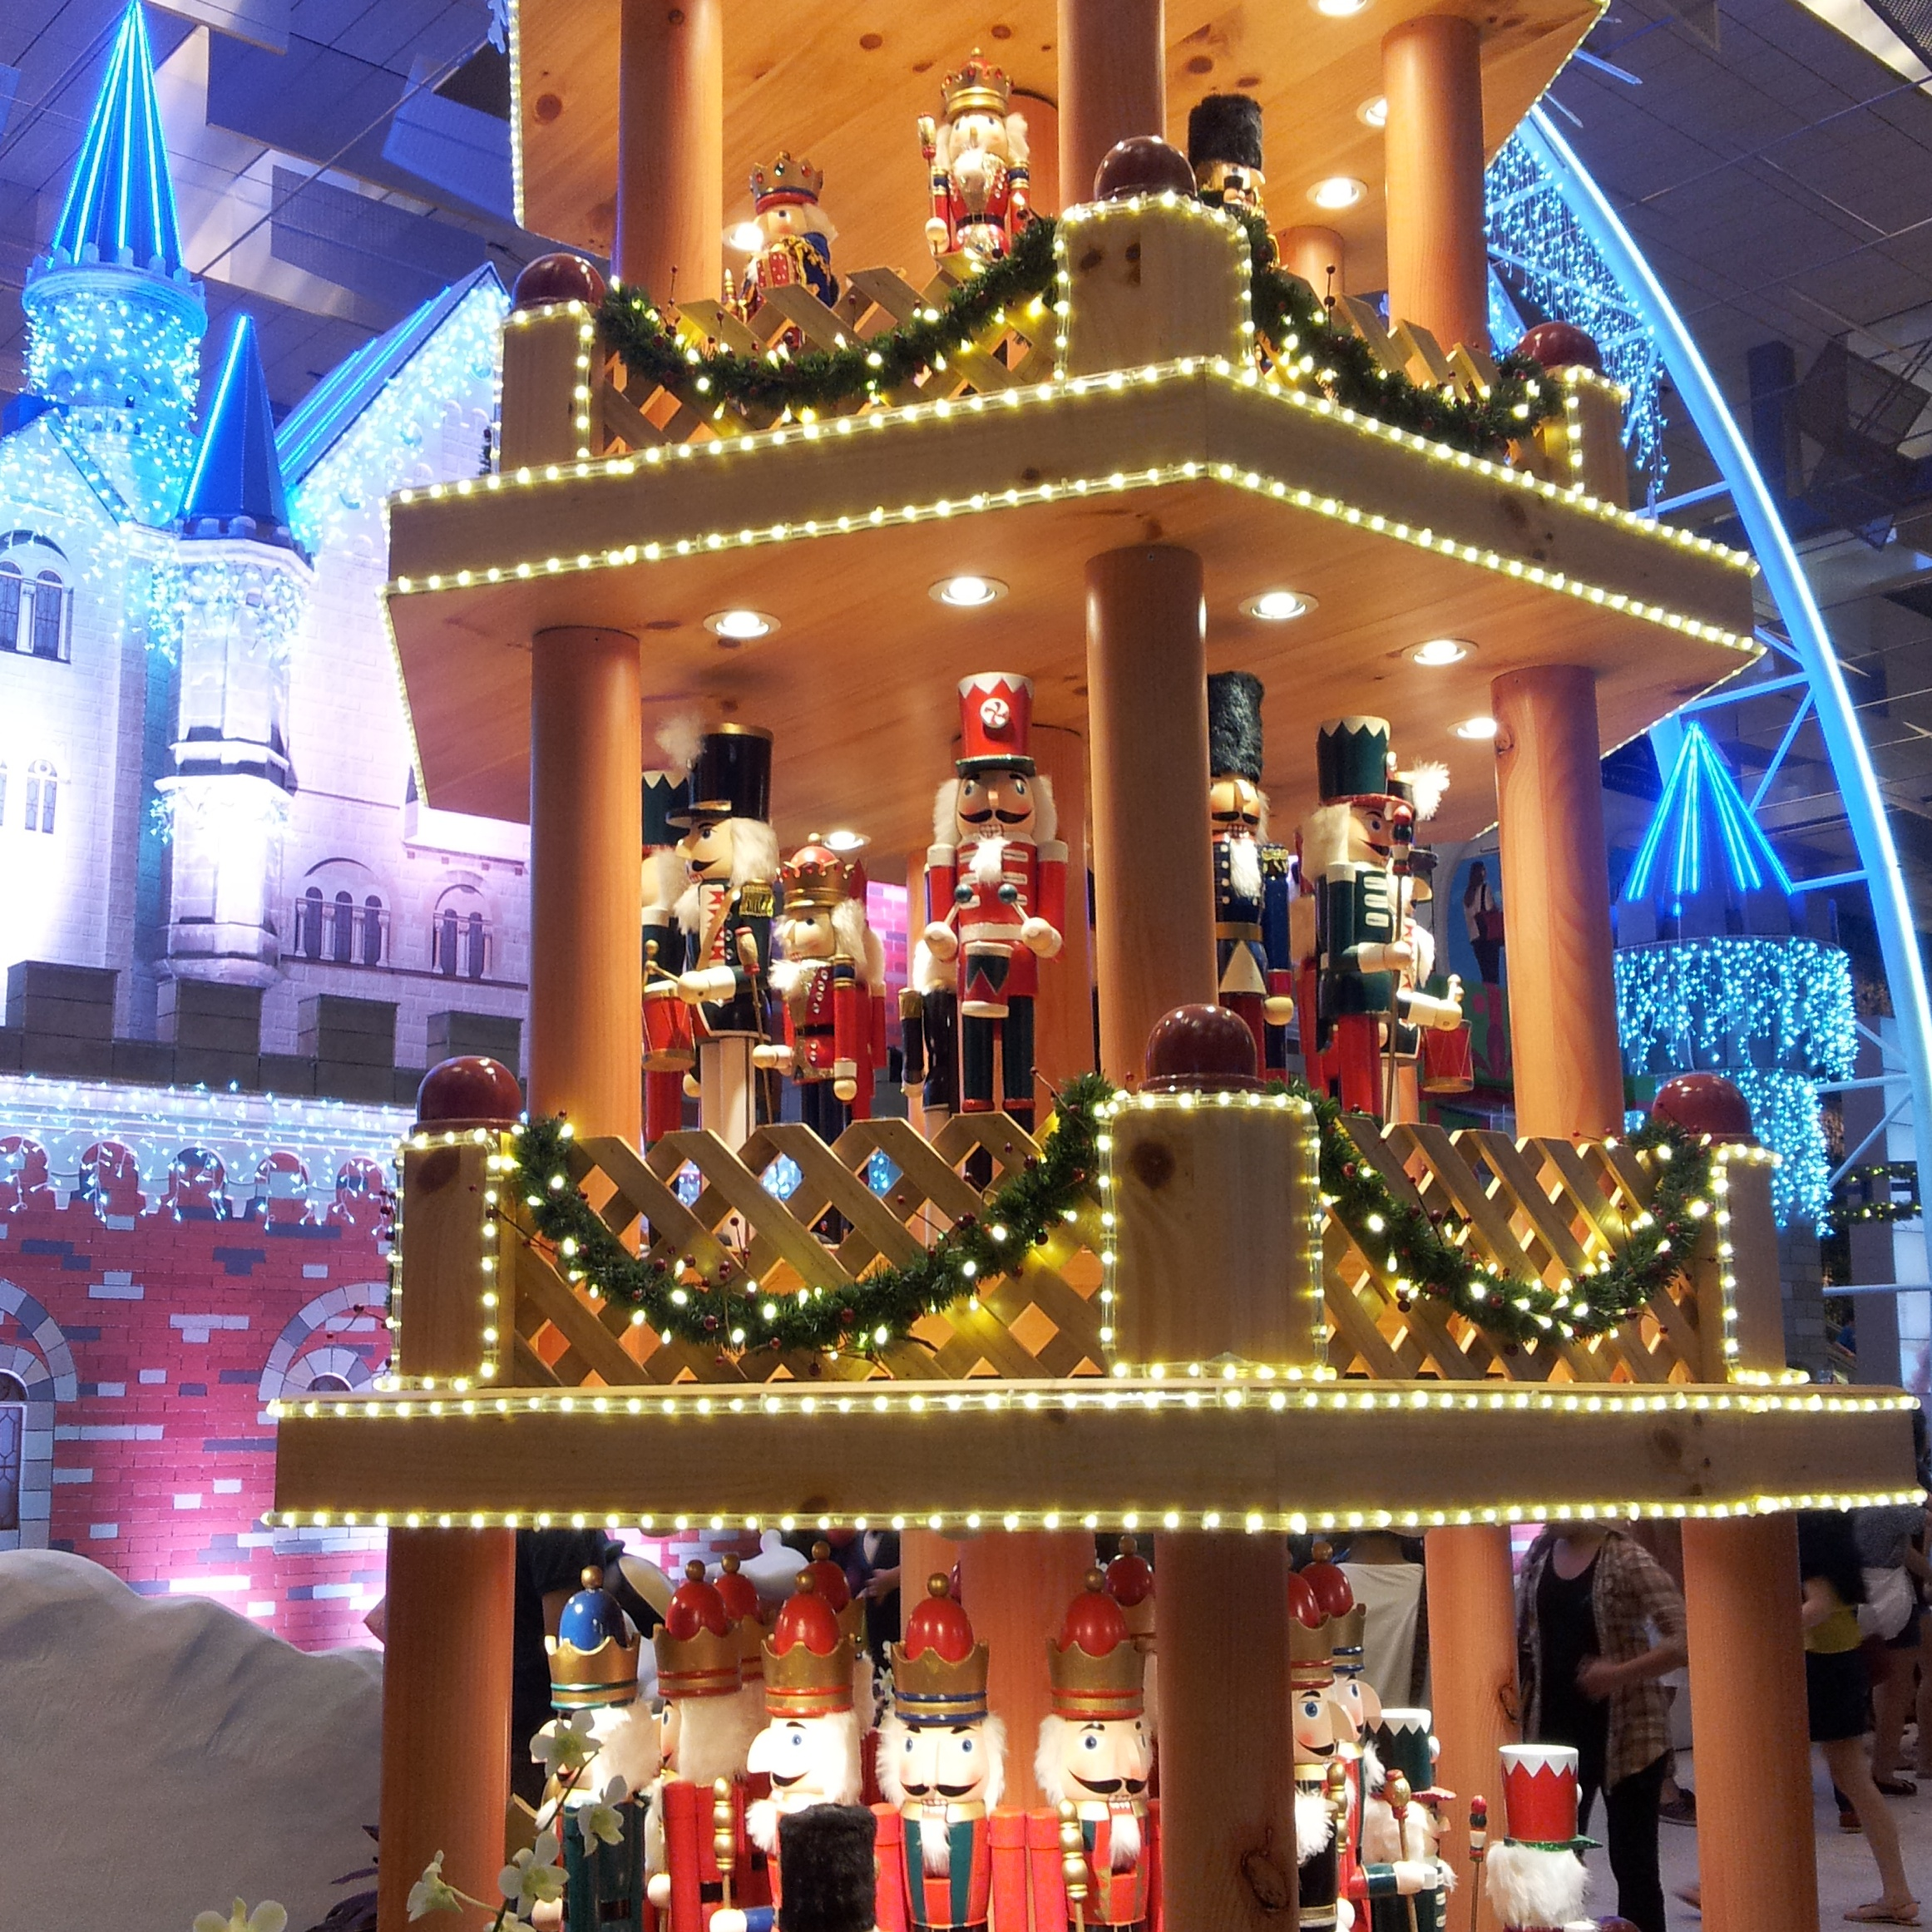 Christmas Decorations: Singapore's Christmas Trees, Festive Lights And Dazzling